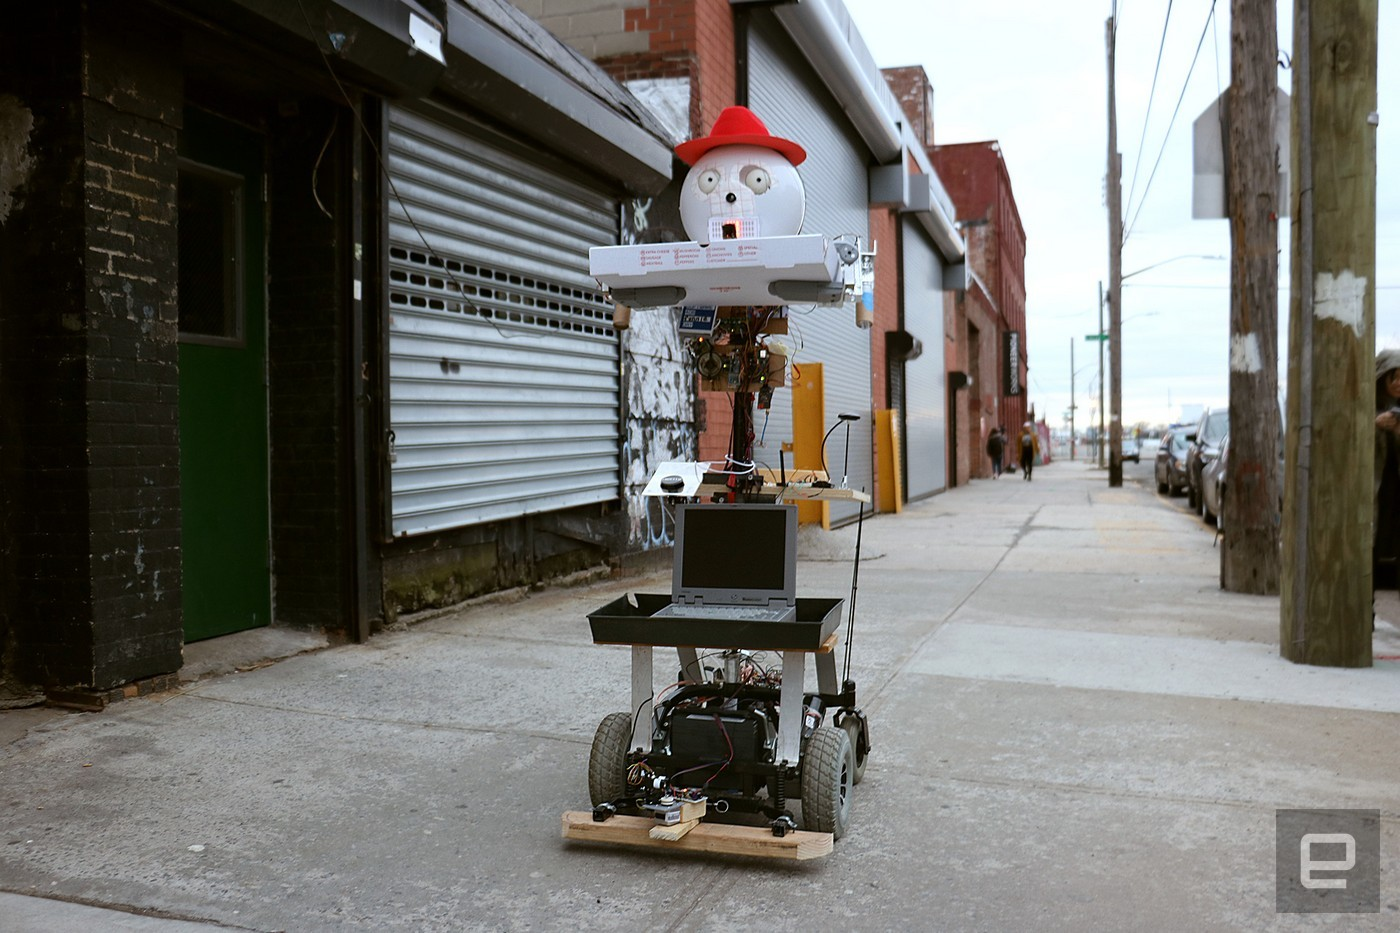 This Pizza And Beer Delivering Robot Is Our New Hero